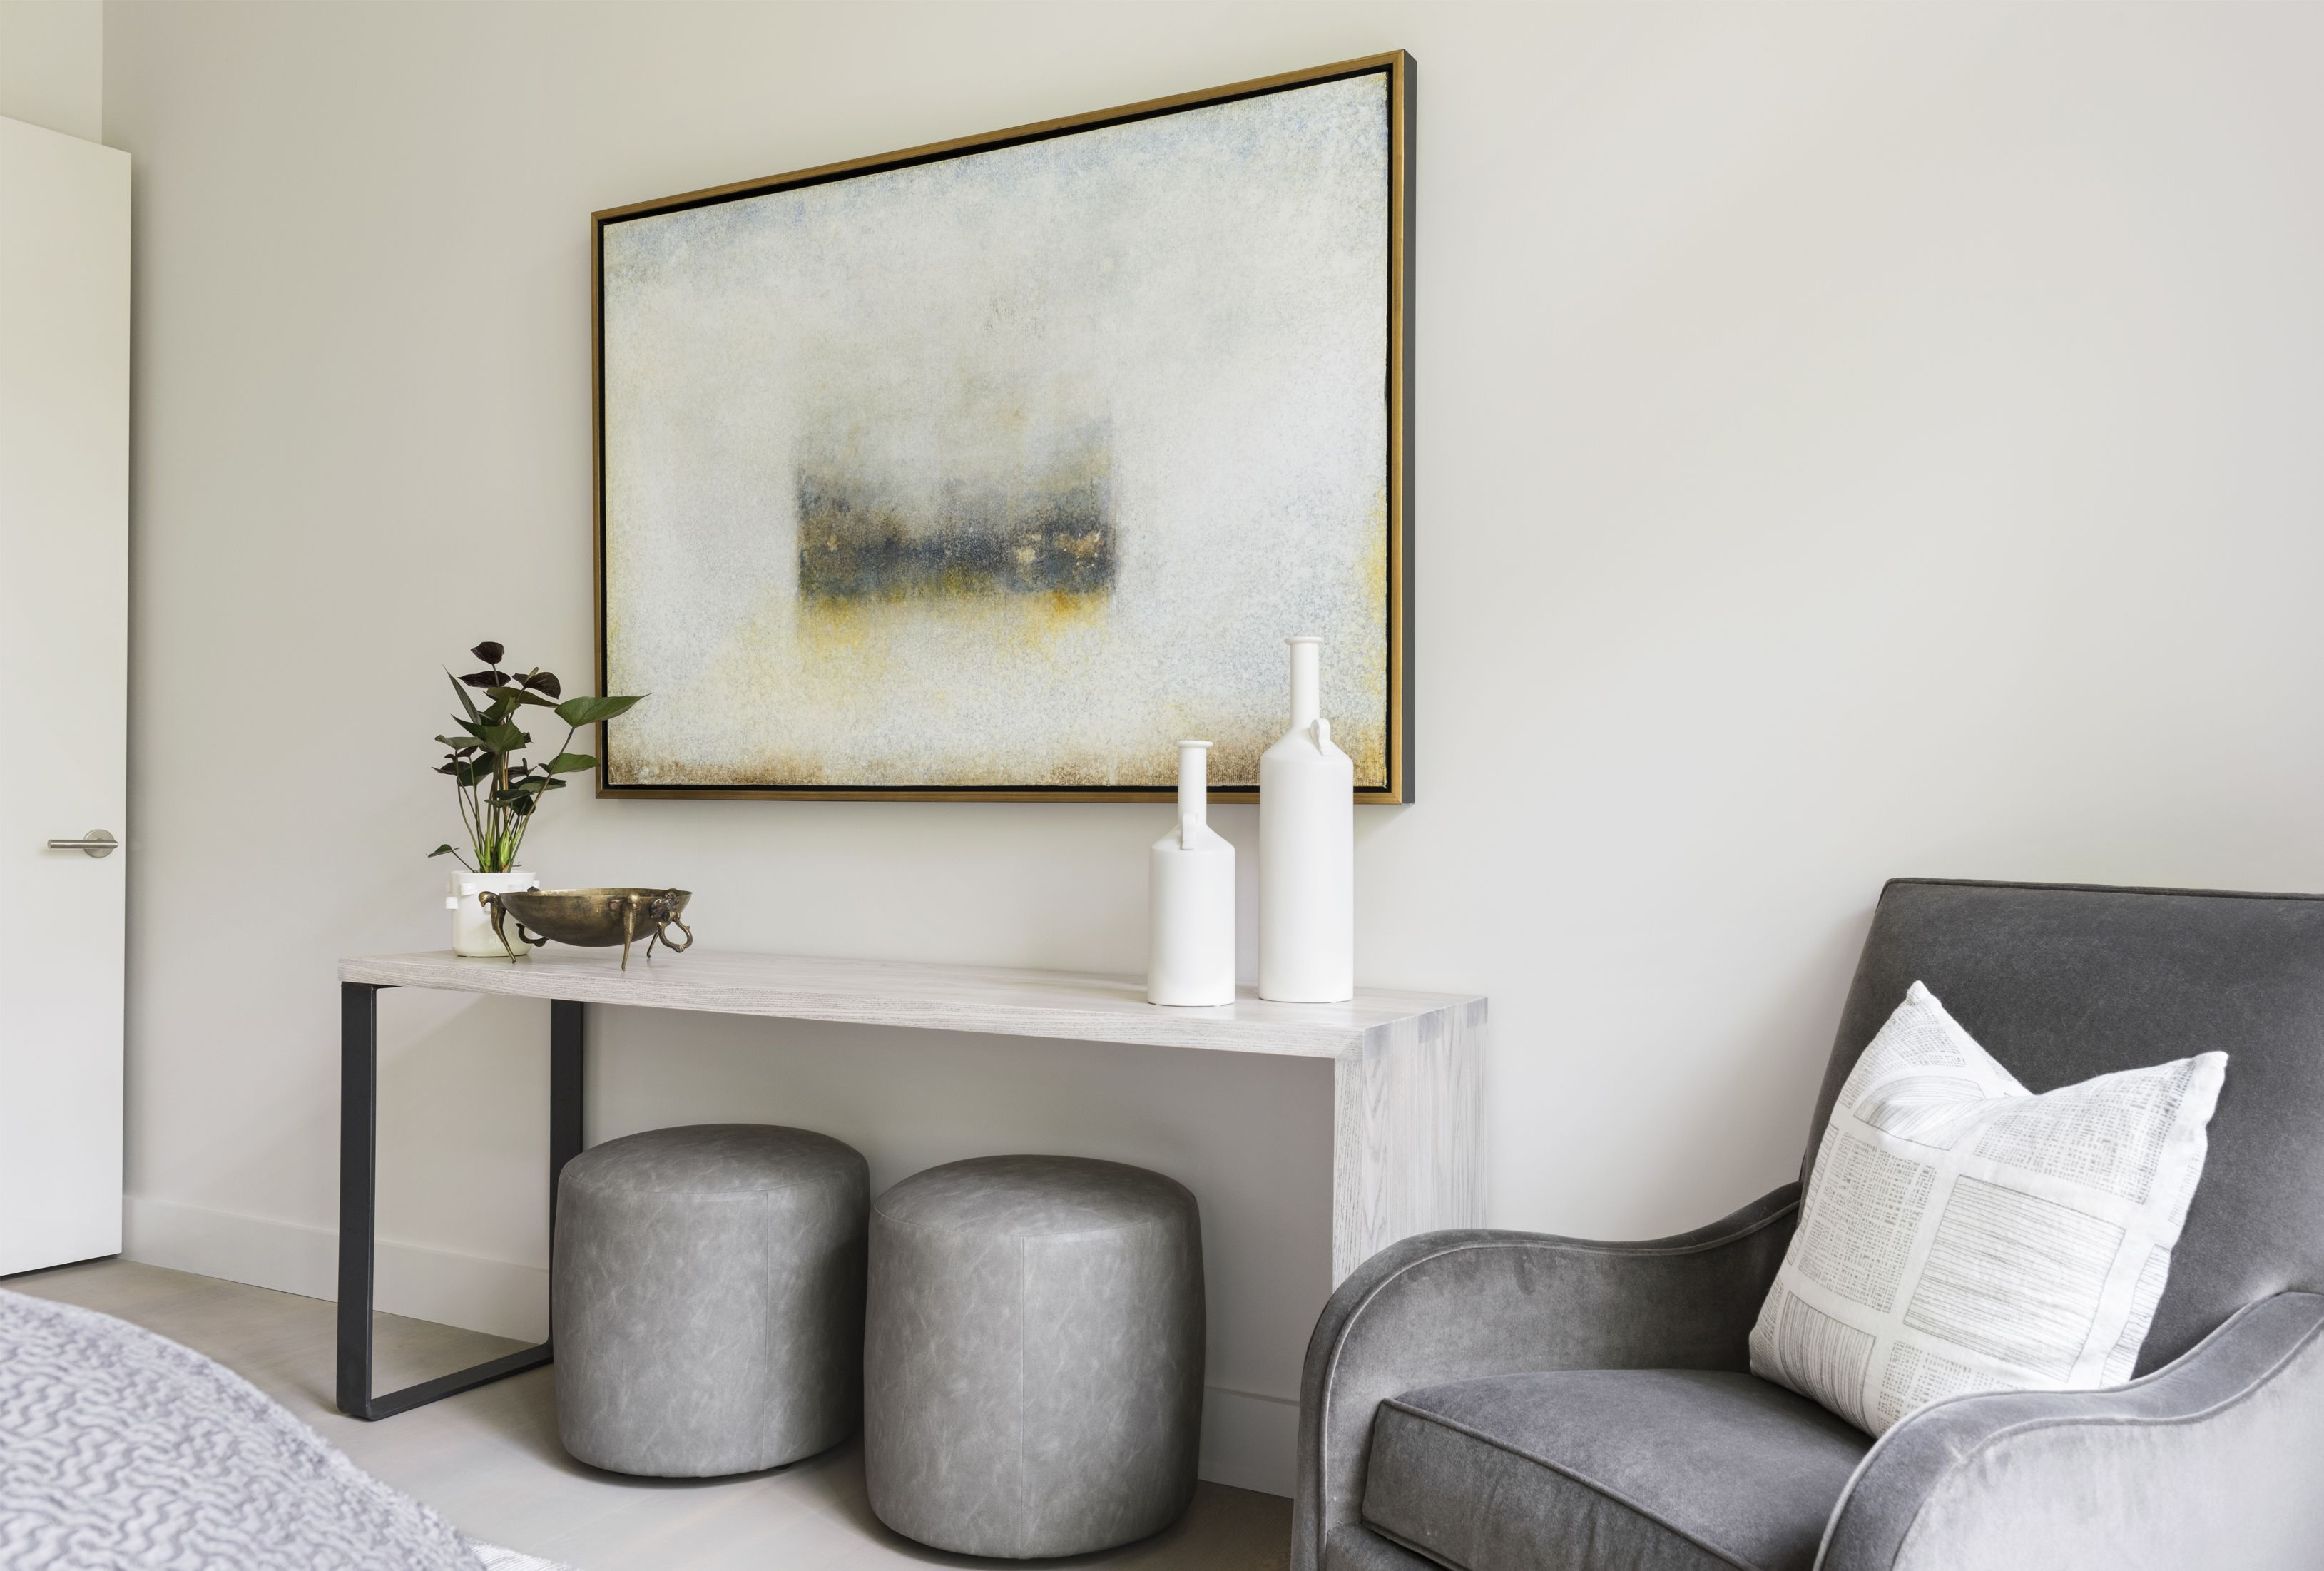 Modern, White Bedroom Interior Design Inspiration. Simple Decor In A Light  And Airy Farmhouse Bedroom. White Throw Pillow On A Gray Armchair.